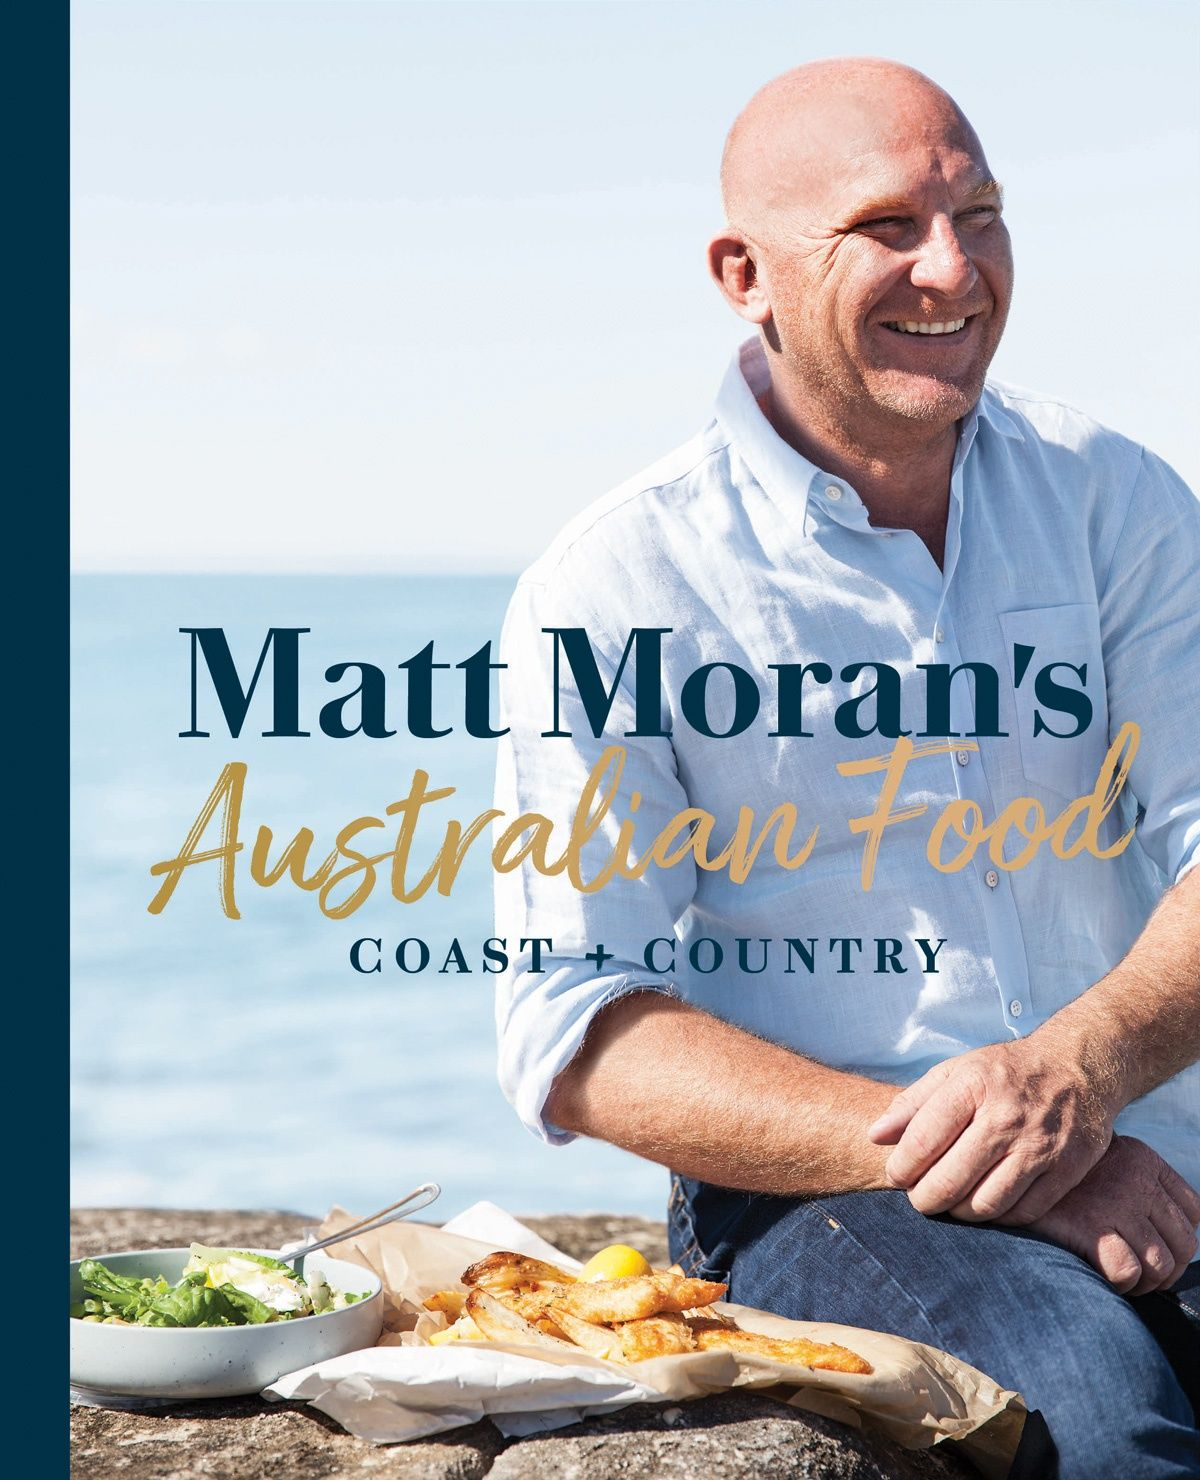 Matt Moran's Australian Food: Coast + Country: Since I am in Australia at the moment, and eating (of course) such wonderful food there, I really wanted to find an Australian book for CookbookCorner. I was beginning to fear I'd never find one in time as my schedule so far hasn't given any time for mooching around a bookshop, but providence provided.